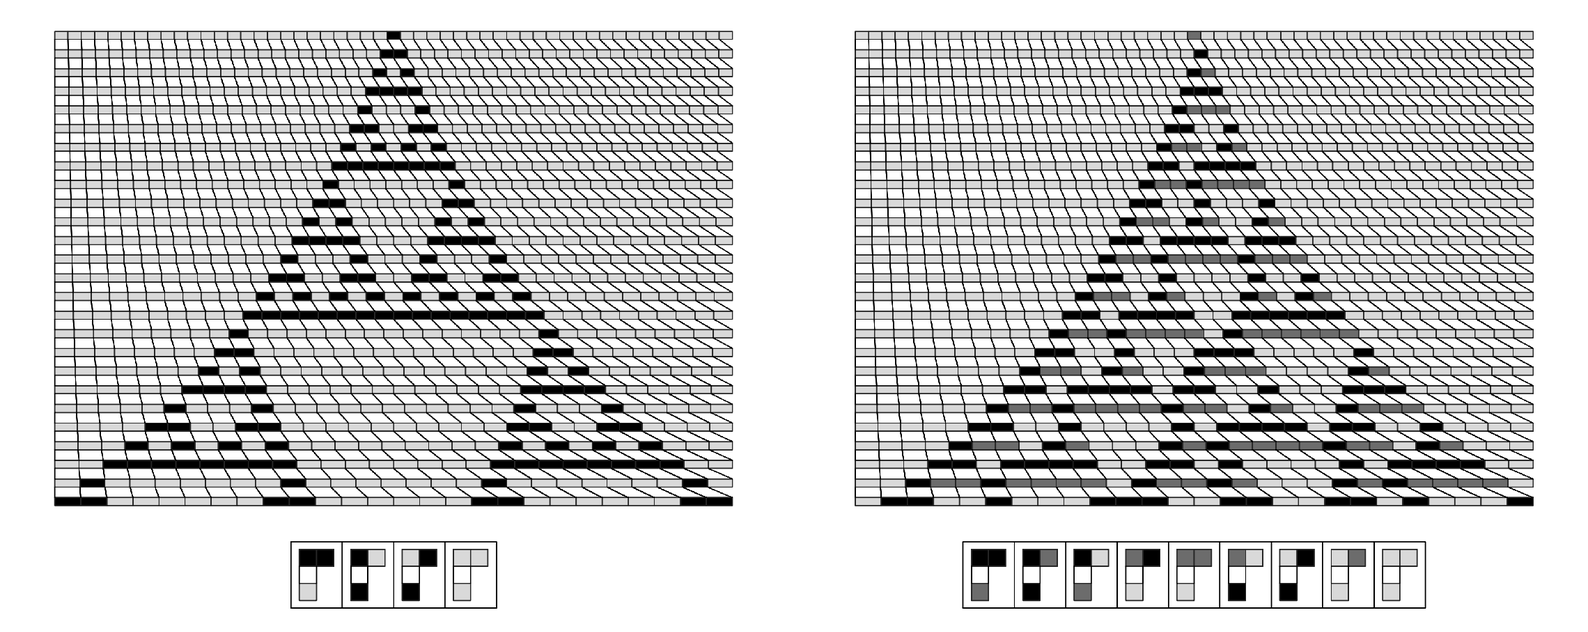 Neighbor-dependent substitution systems that emulate cellular automata with rules 90 and 30